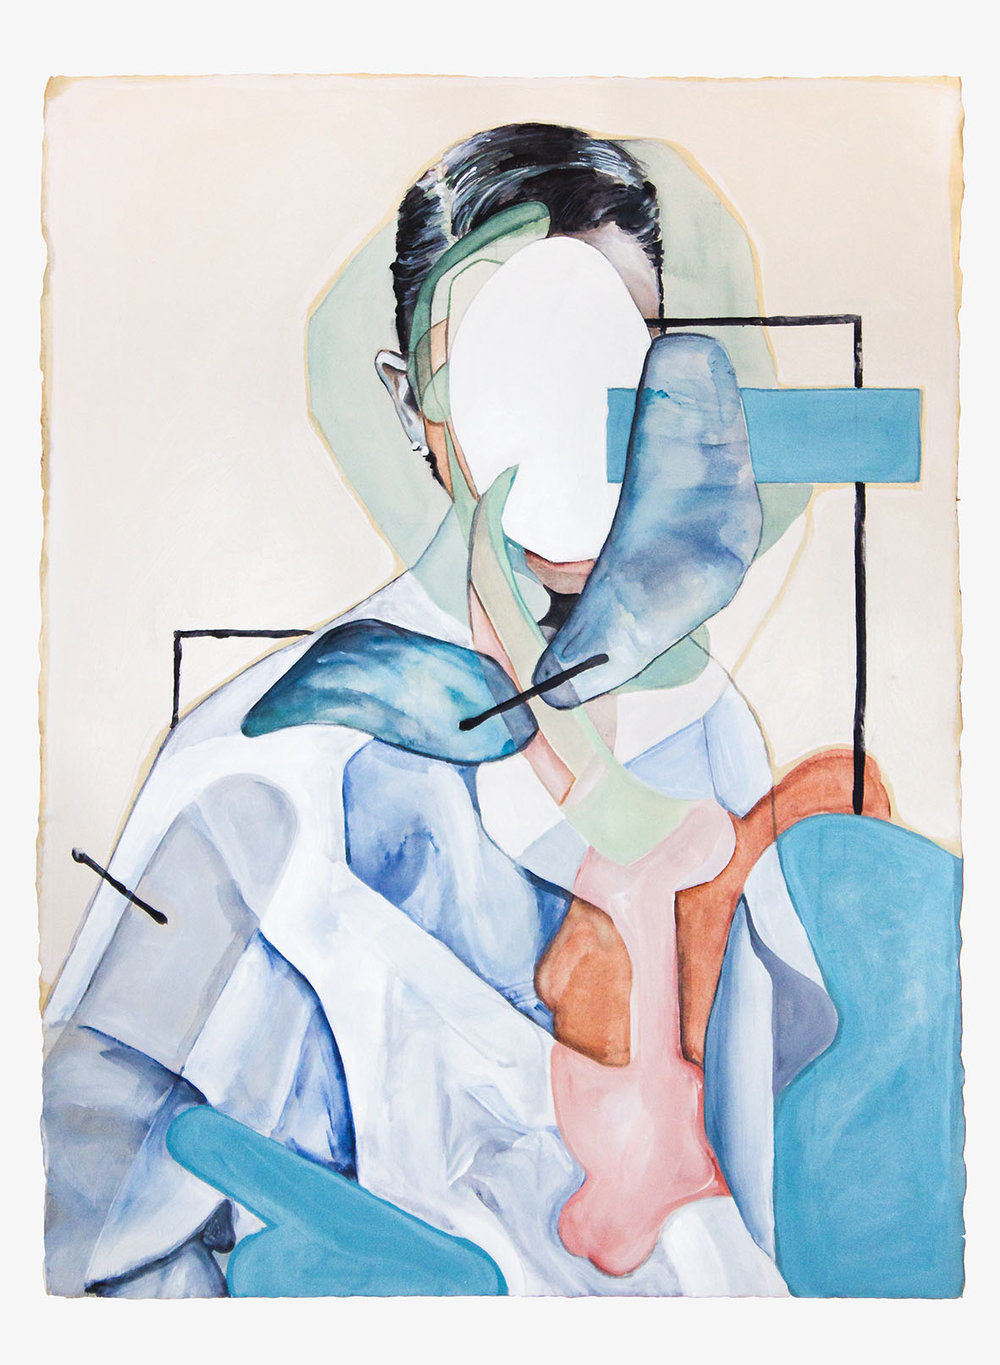 Amnesia  2017, Watercolour, Gouache and Acrylic on Paper, 56 x 76 cm  SOLD